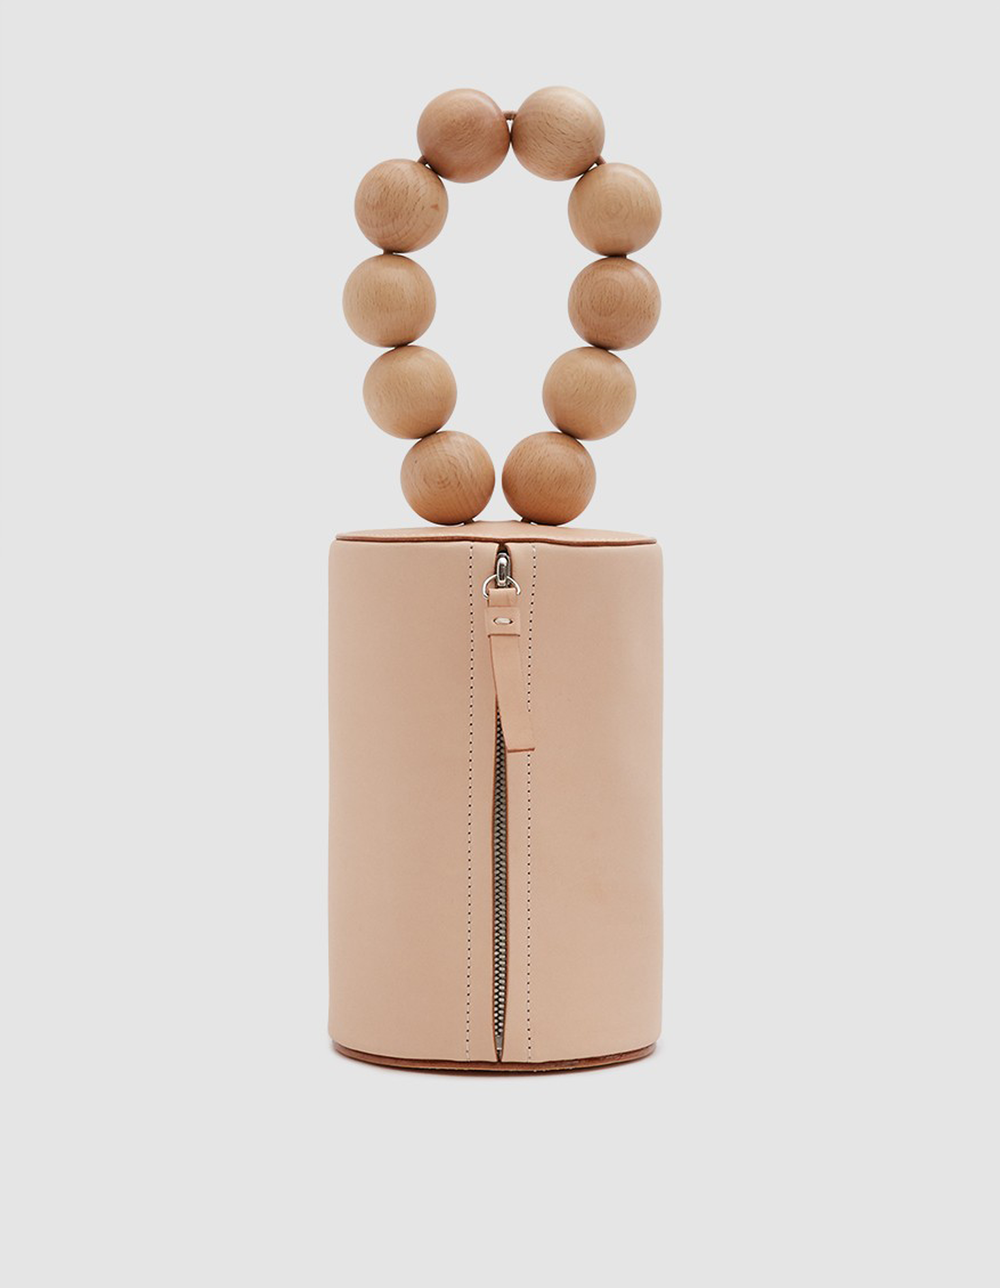 wooden ball clutch | @themissprints